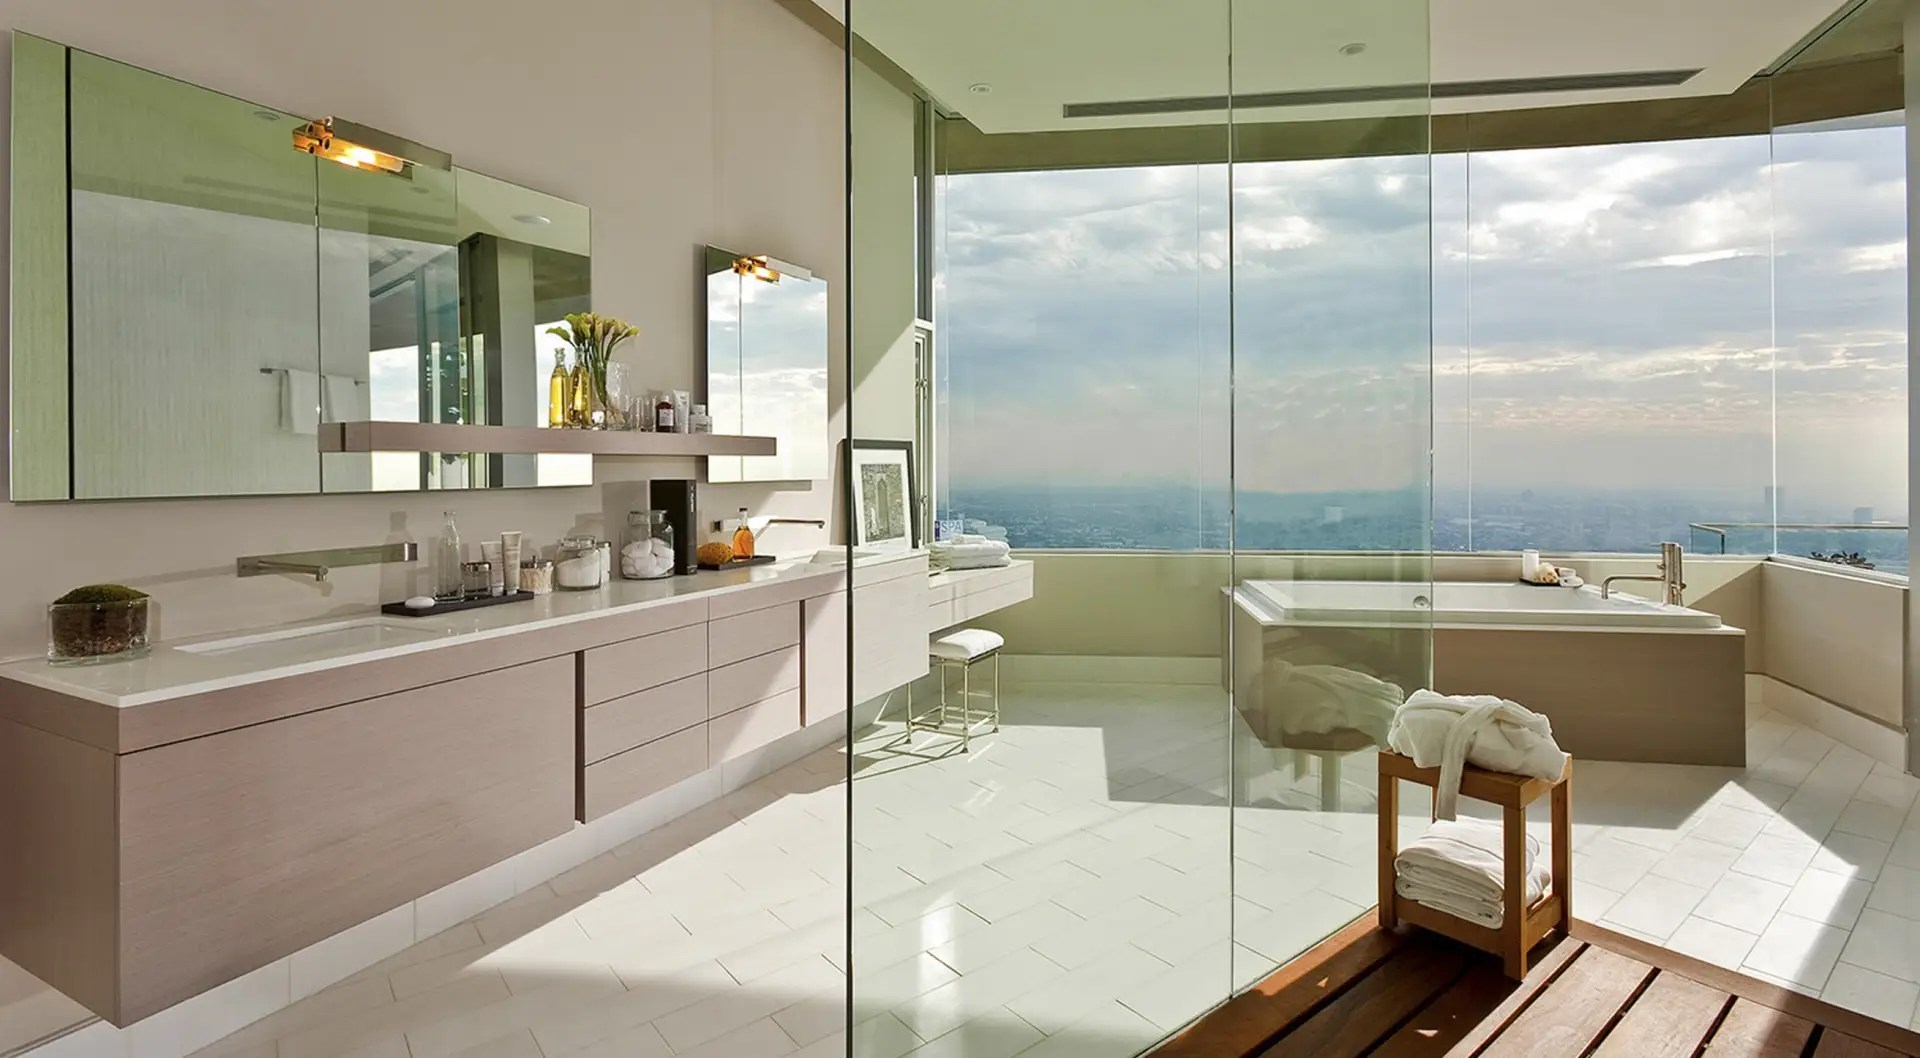 There are seven bathrooms that also take great advantage of the outside view.